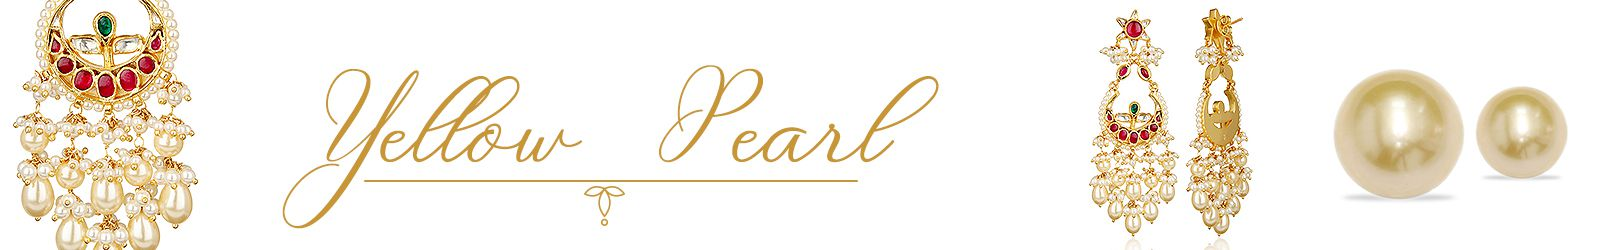 Online Natural Yellow Pearl Silver Jewelry Supplier and Store in Jaipur